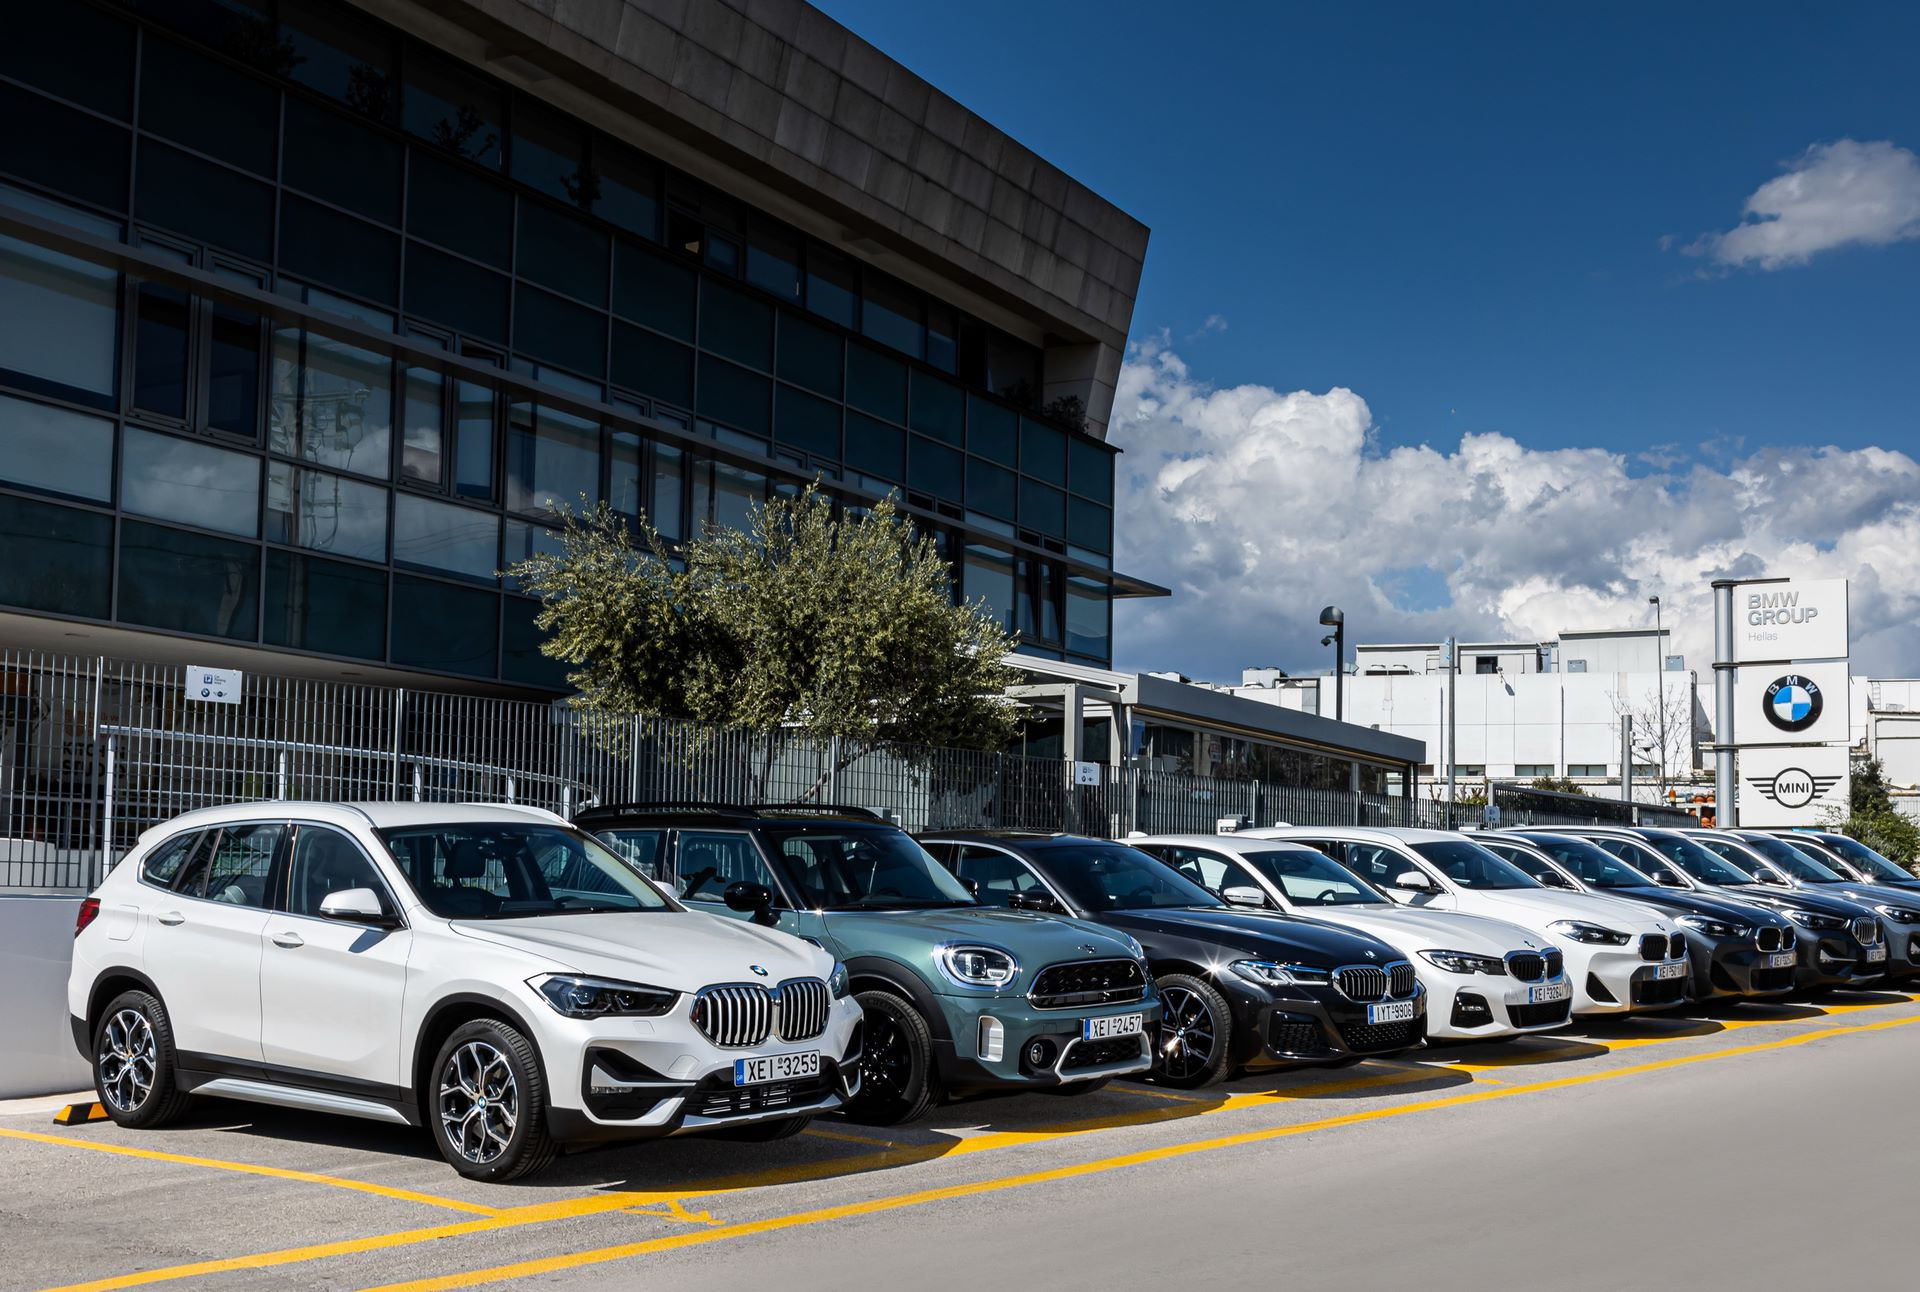 BMW-Group-Hellas-EV-Electric-Chargers-Charging-16